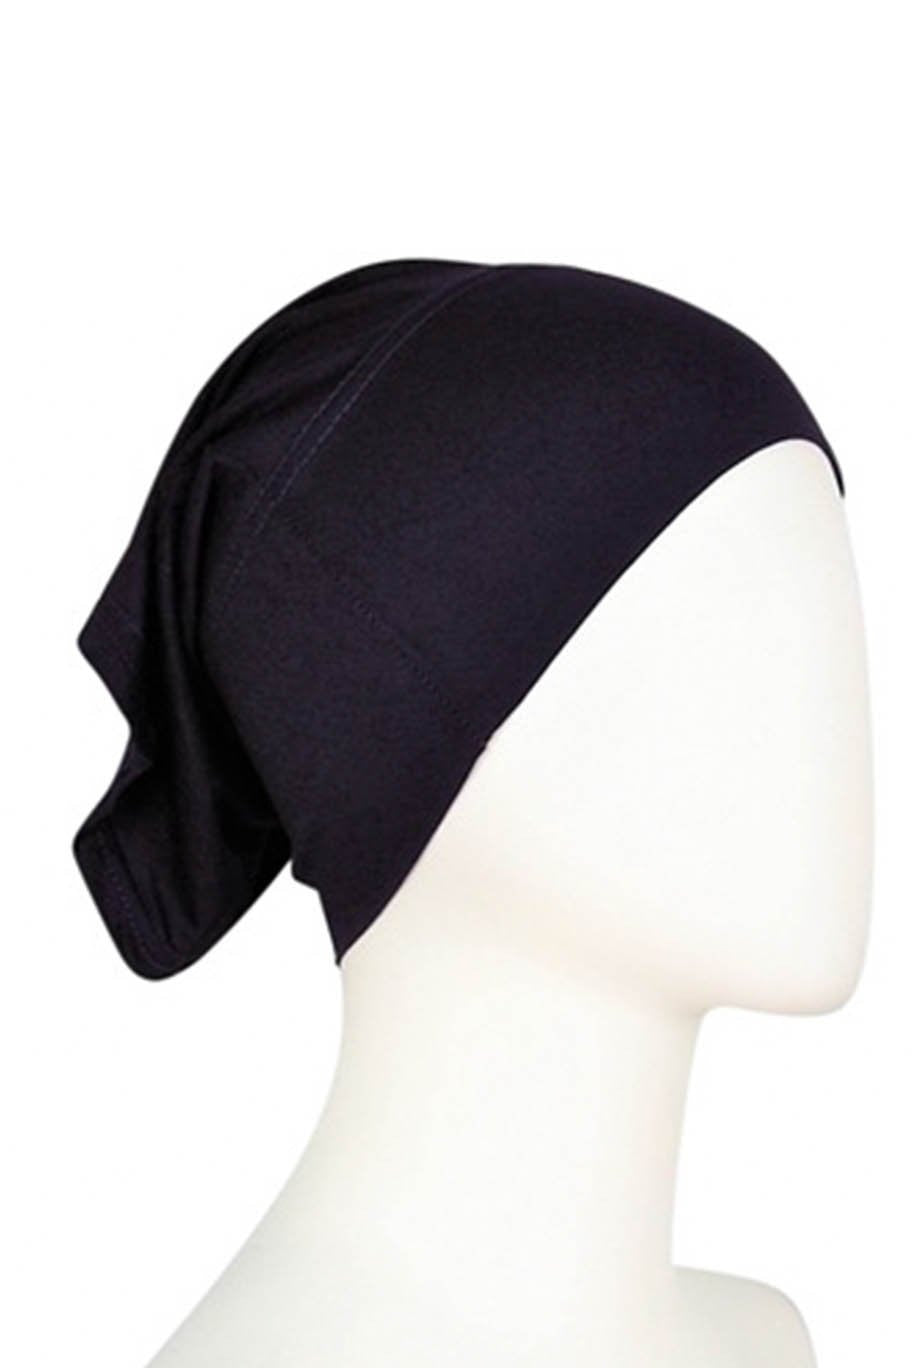 Basic Black Under-cap for Hijab - Under-Caps - The Modest Look